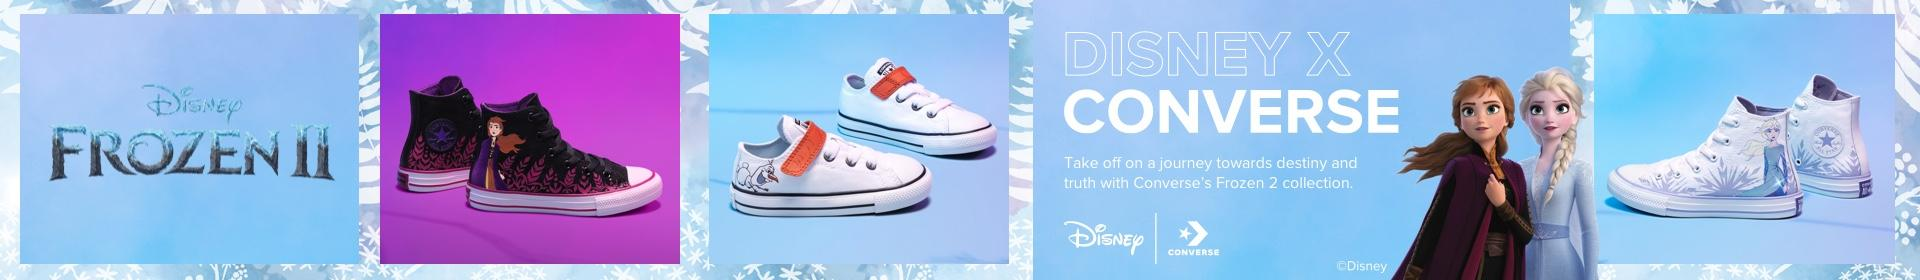 Disney Frozen 2 x Converse | Shop Now